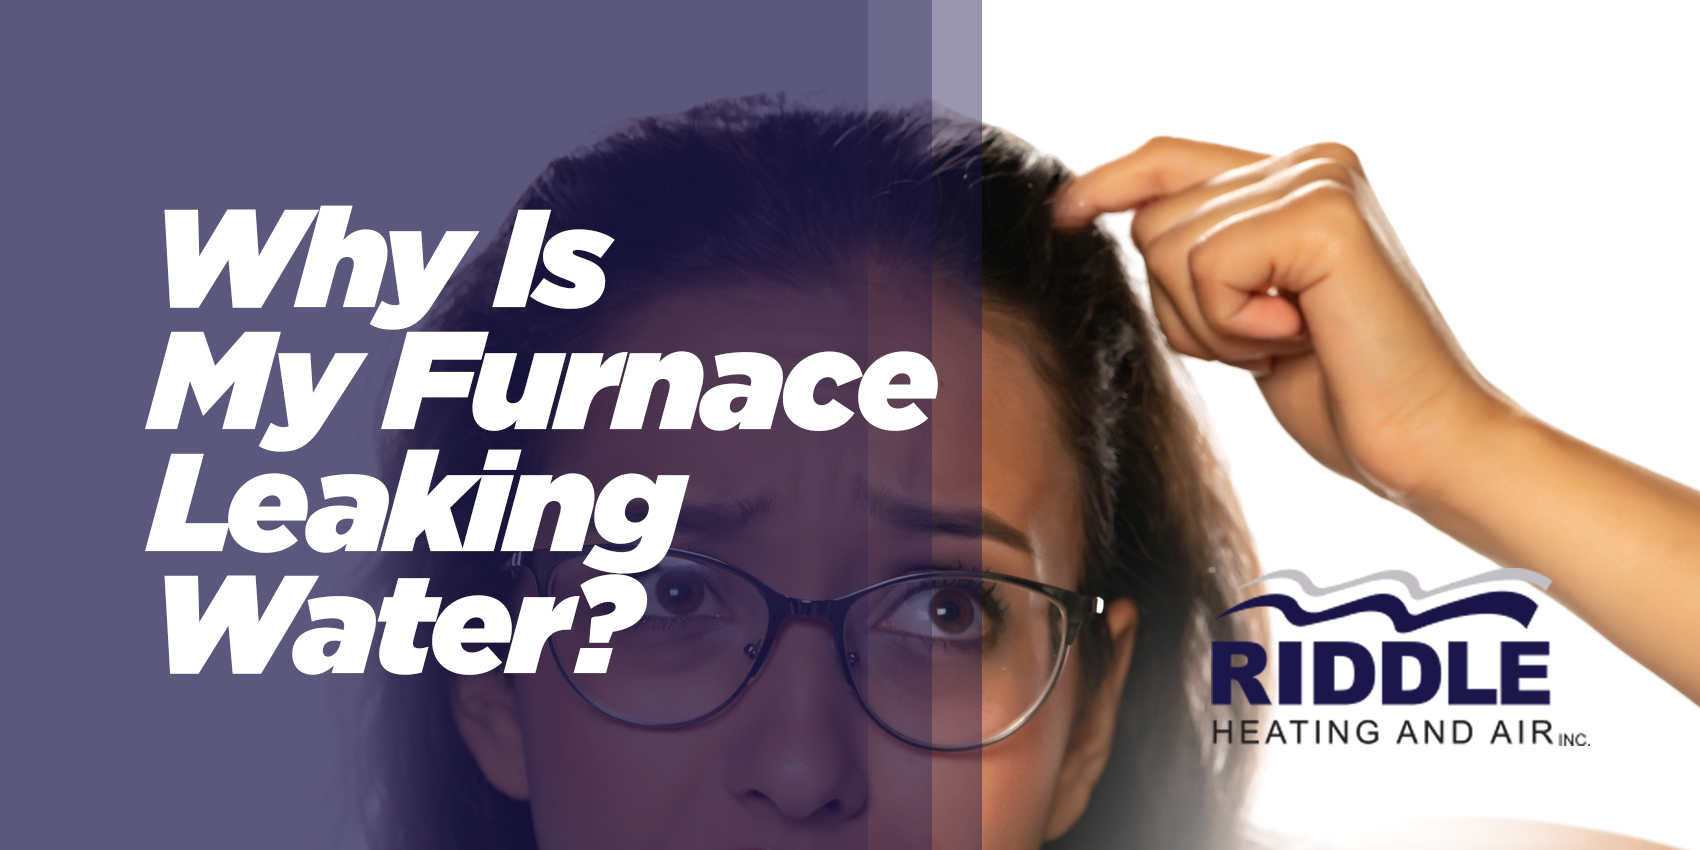 Why Is My Furnace Leaking Water?